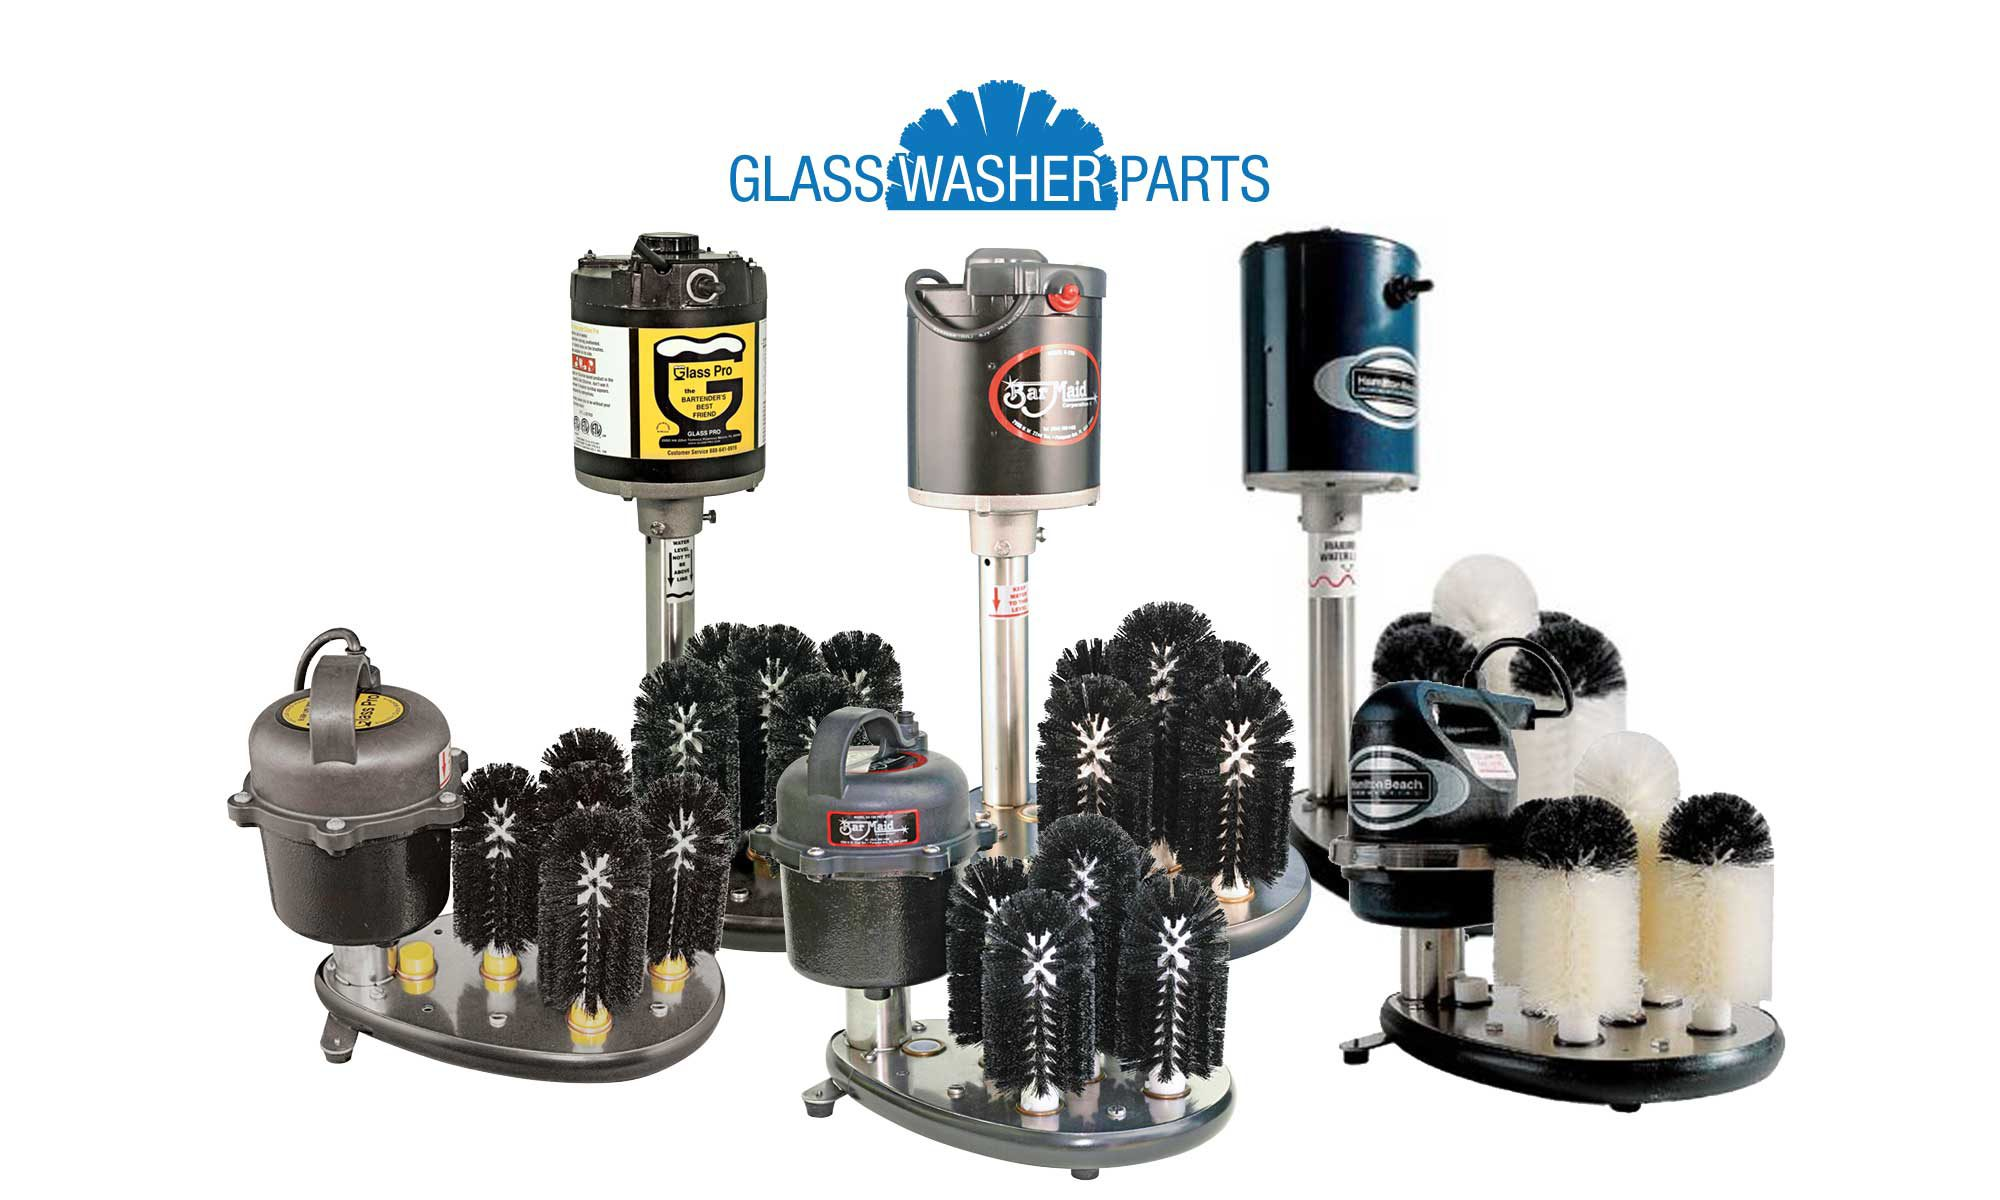 Glass Washer Parts